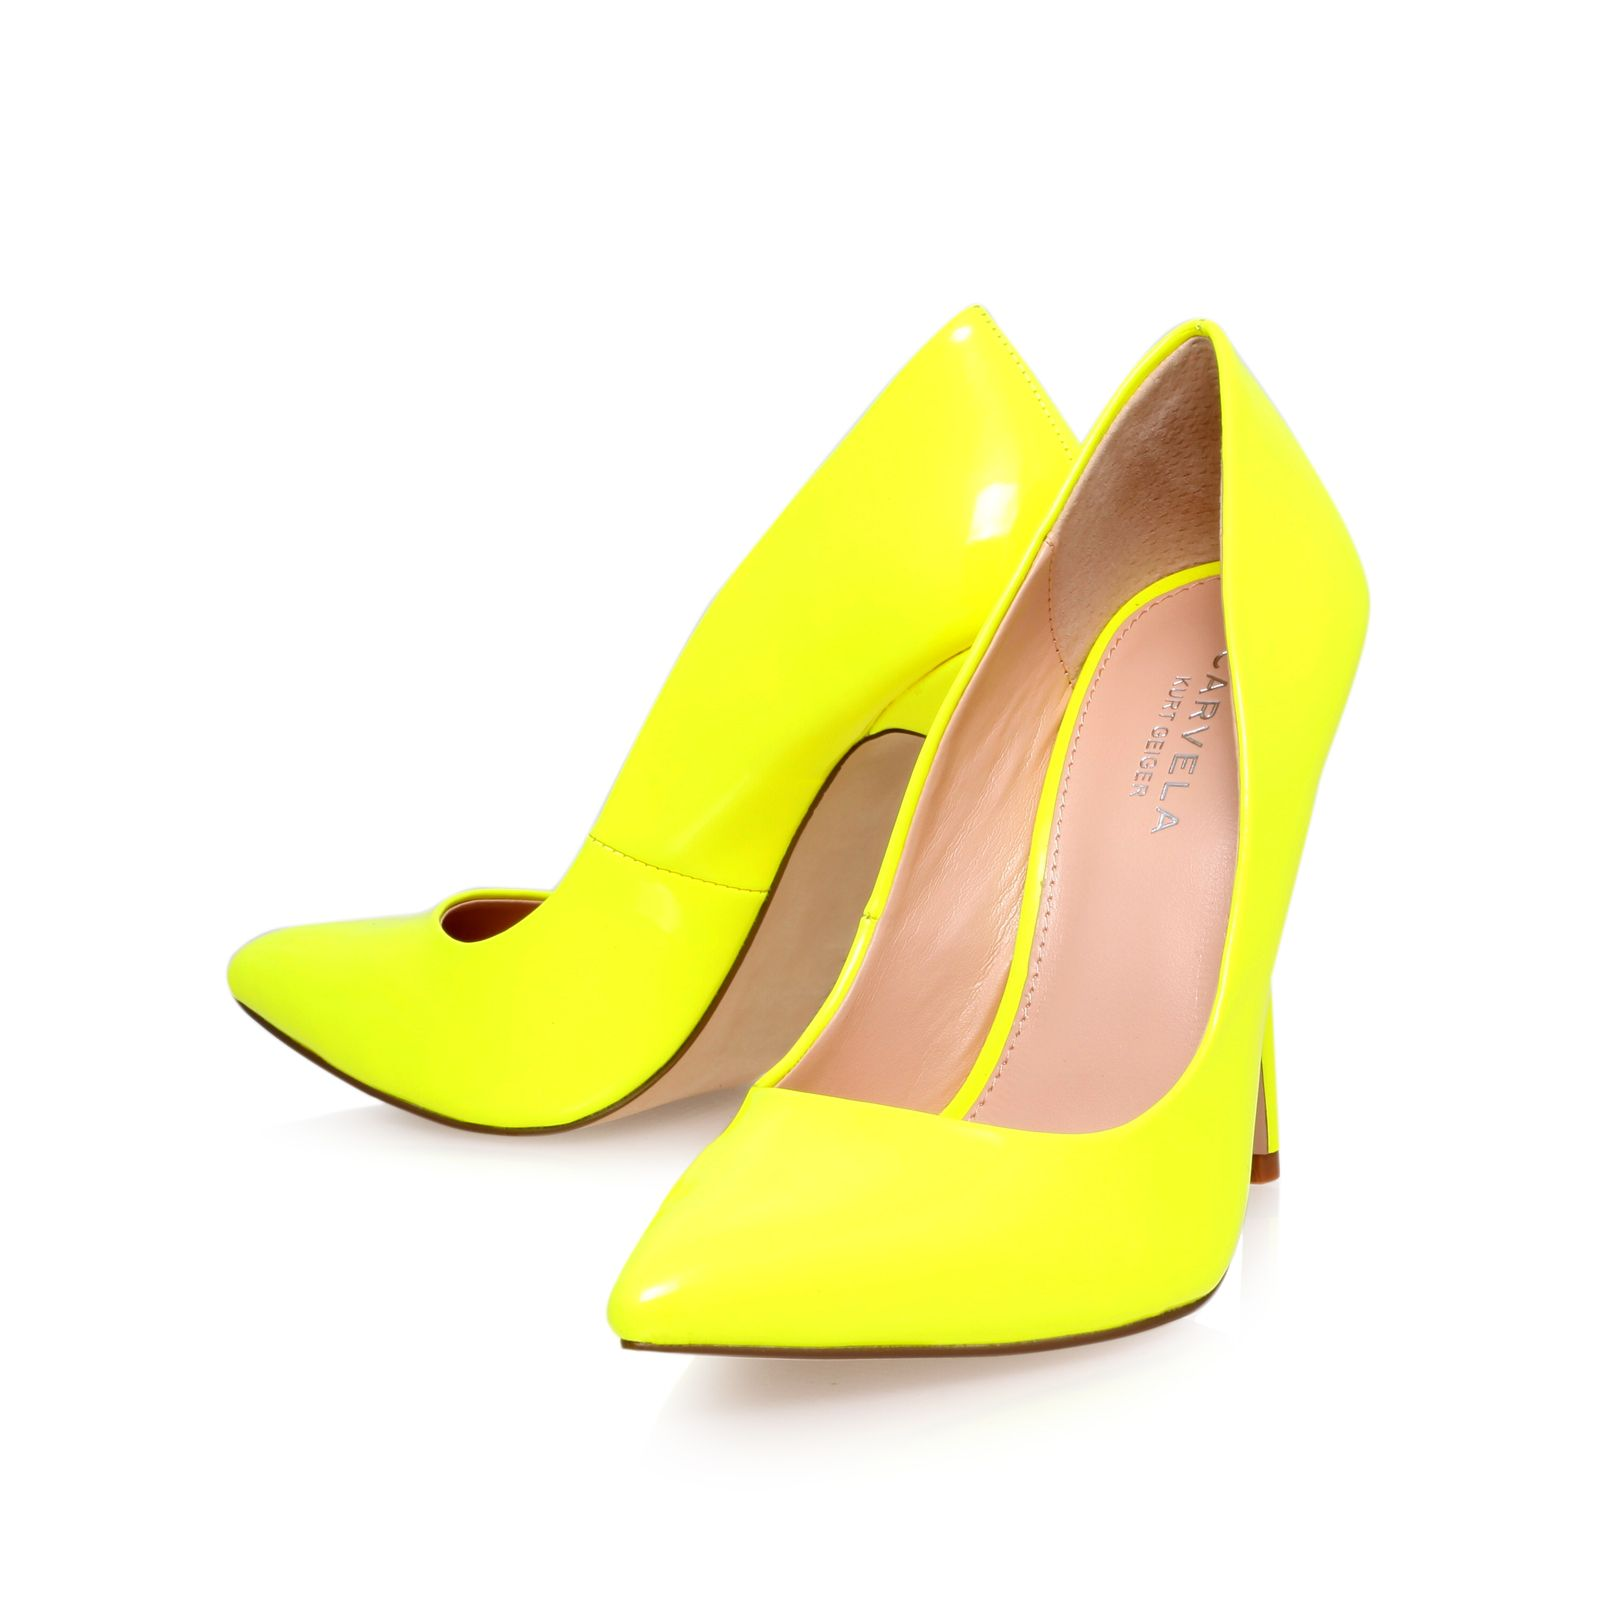 Gunning high heeled court shoes